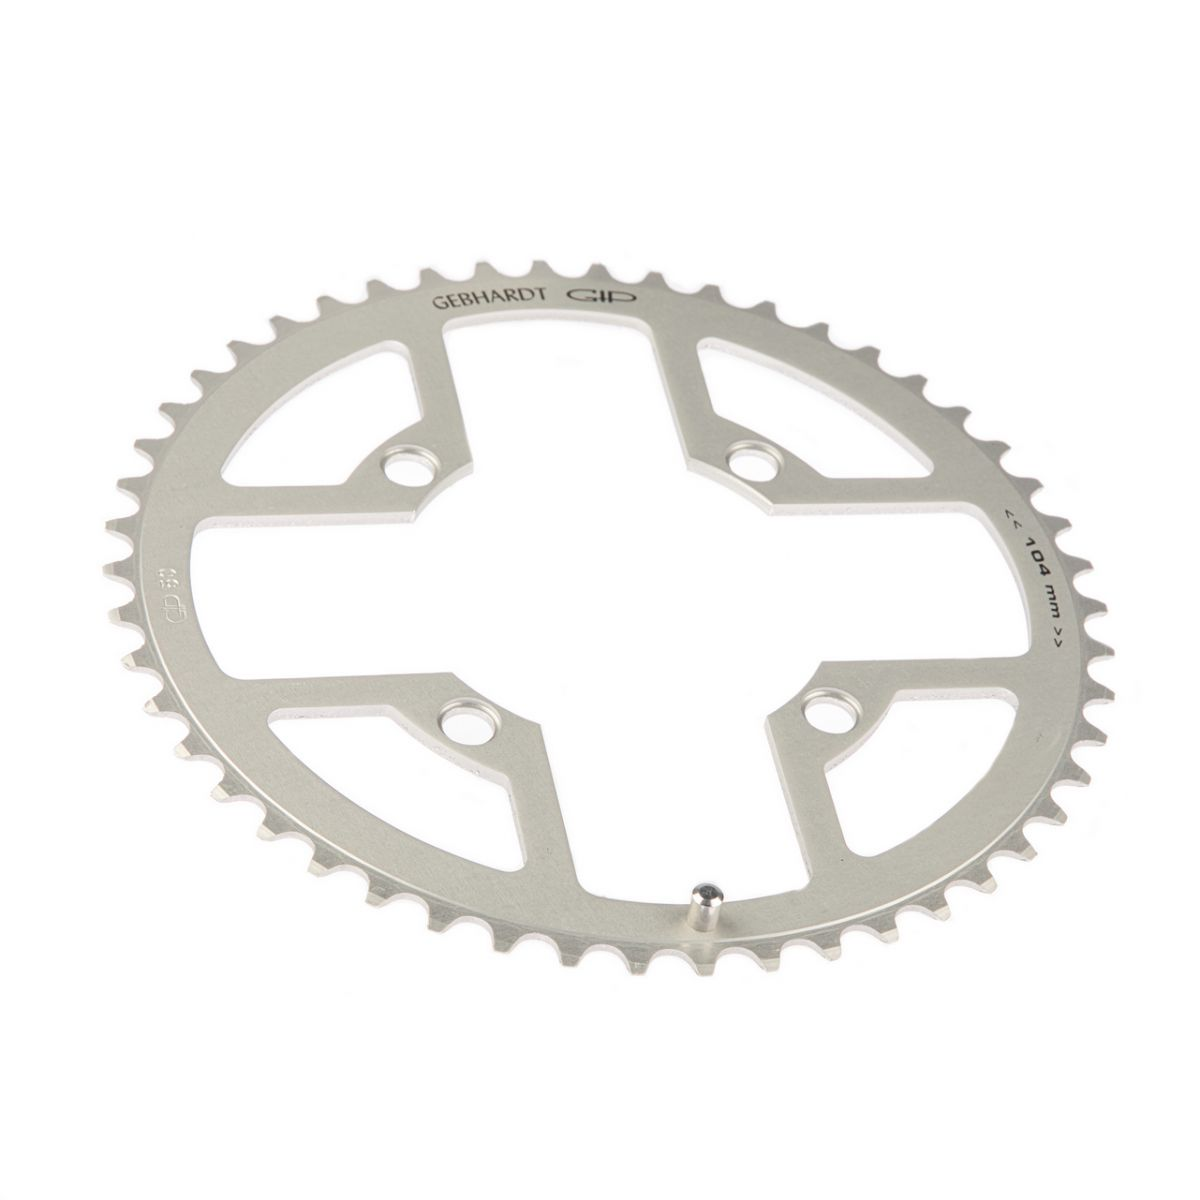 gebhardt chainring classic bcd 104 mm 4hole 48t silver